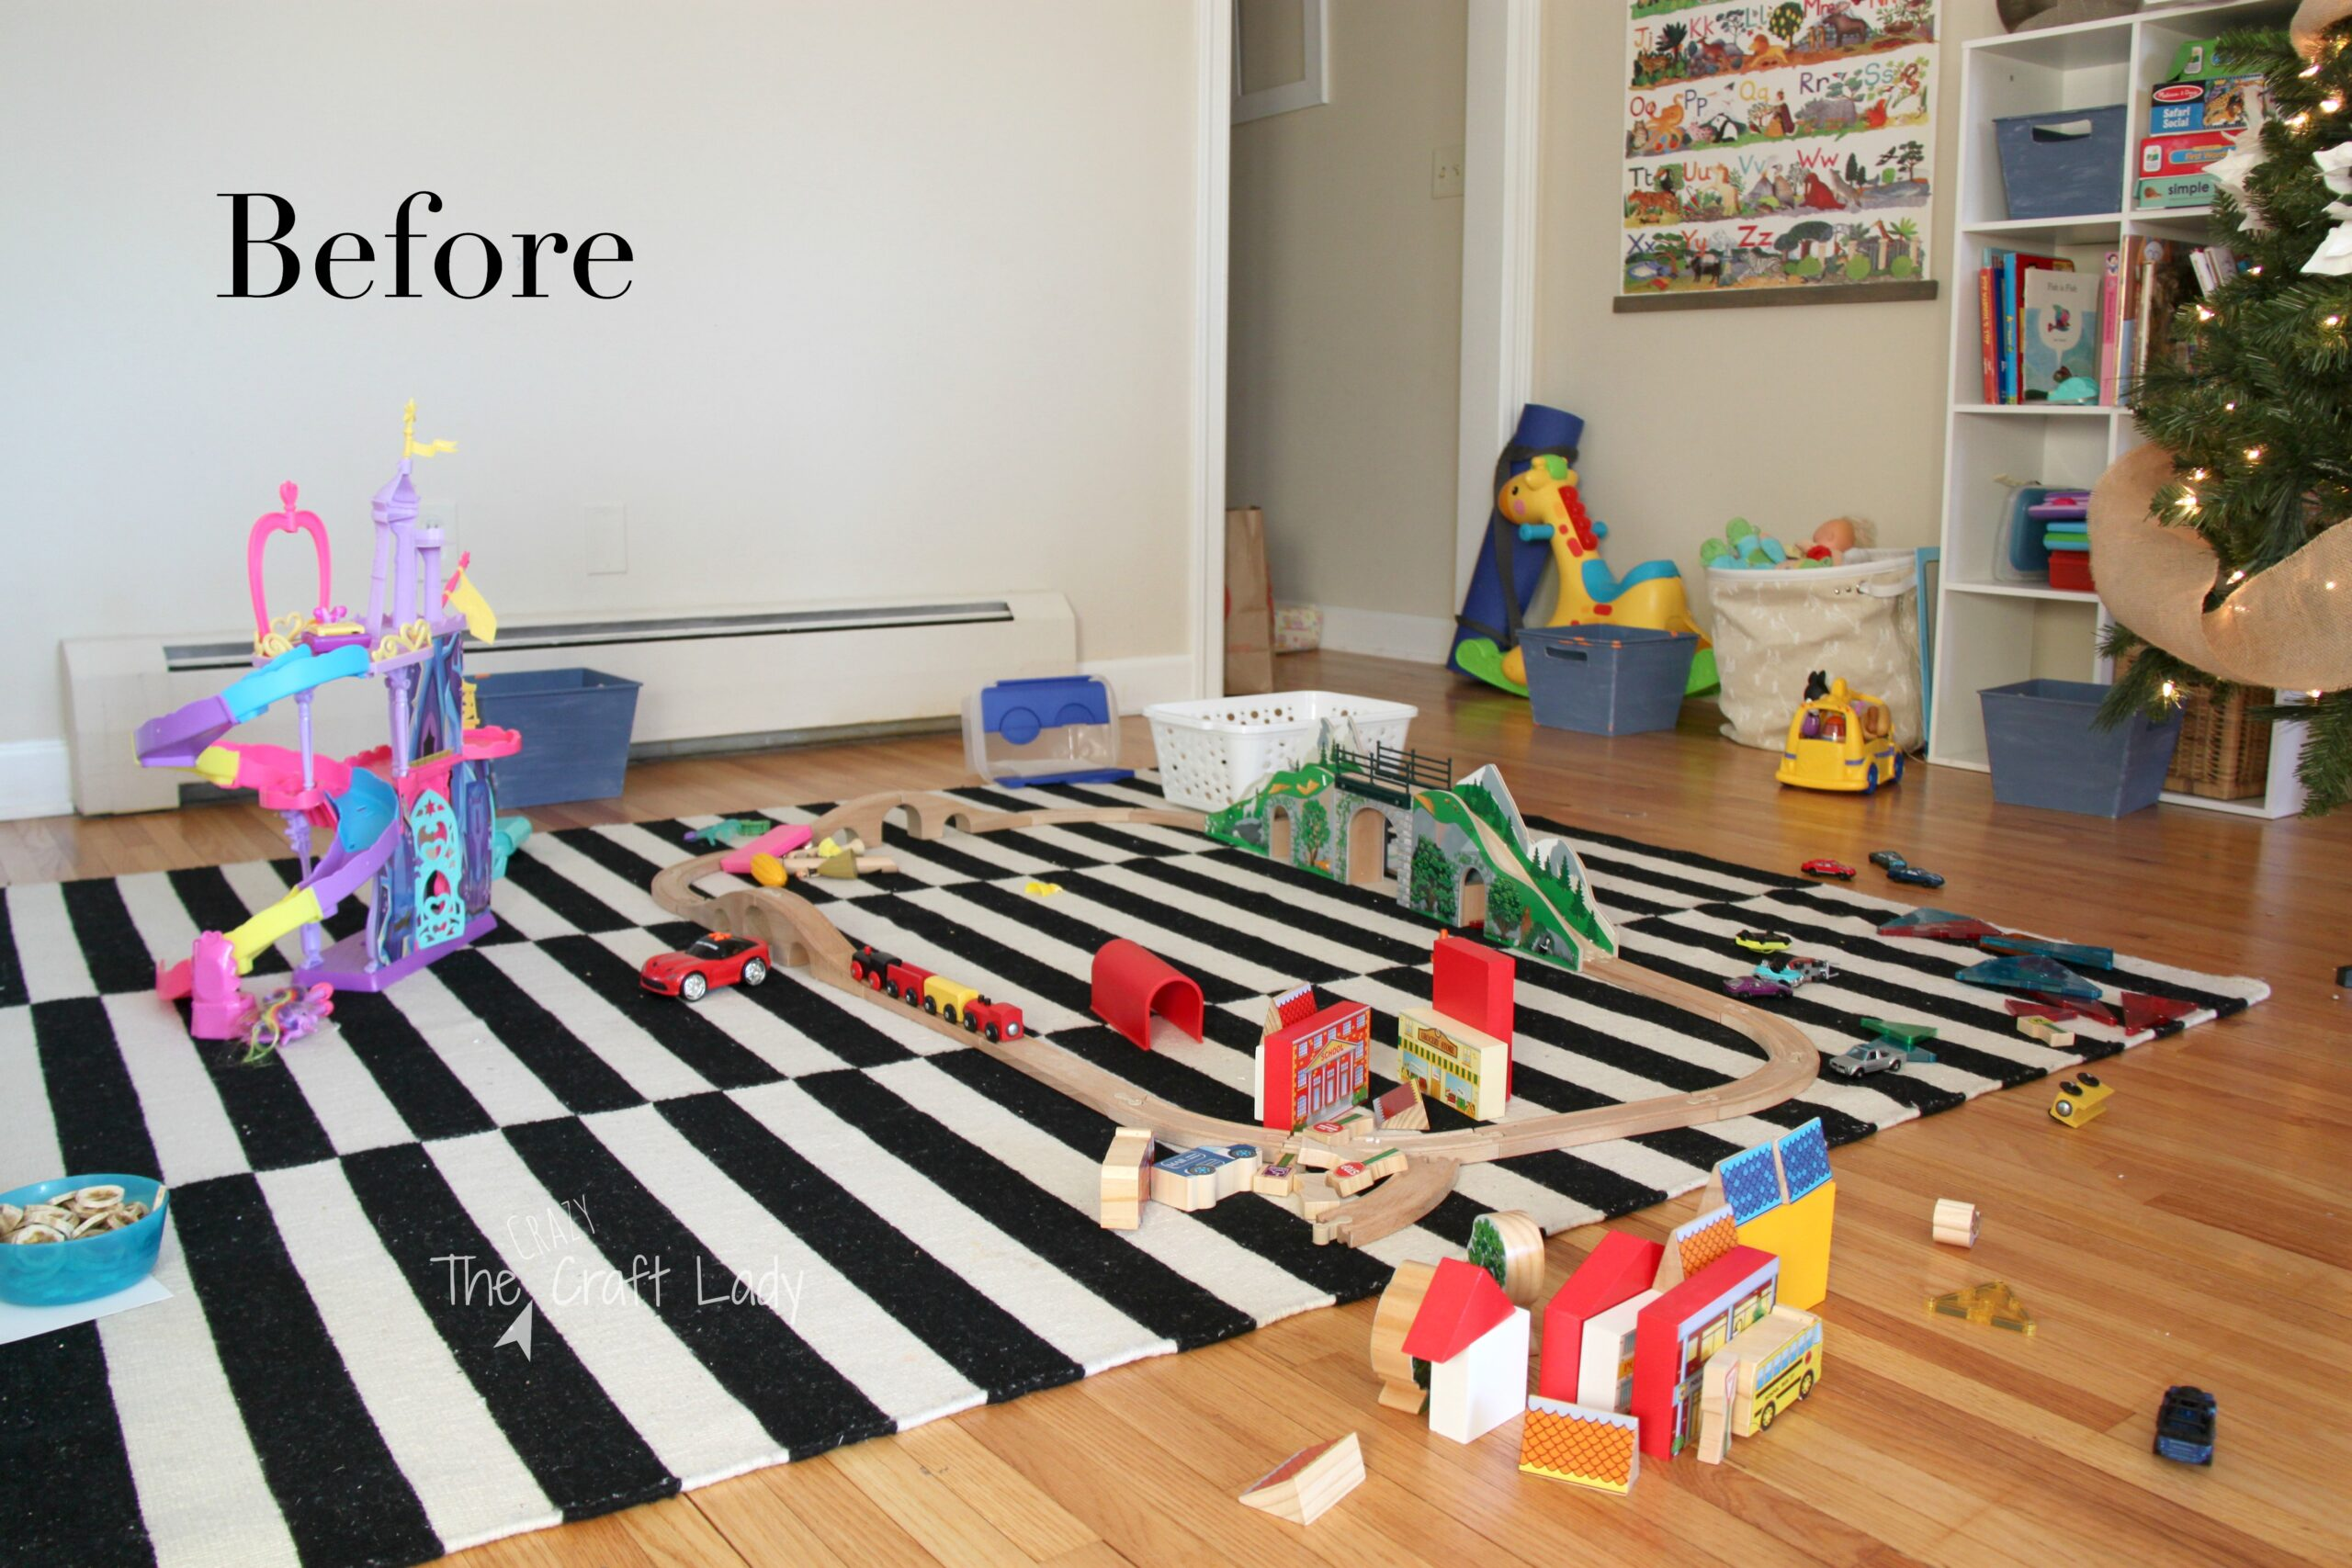 tables table collection small unique set wooden kidkraft train l gallery image metropolis home